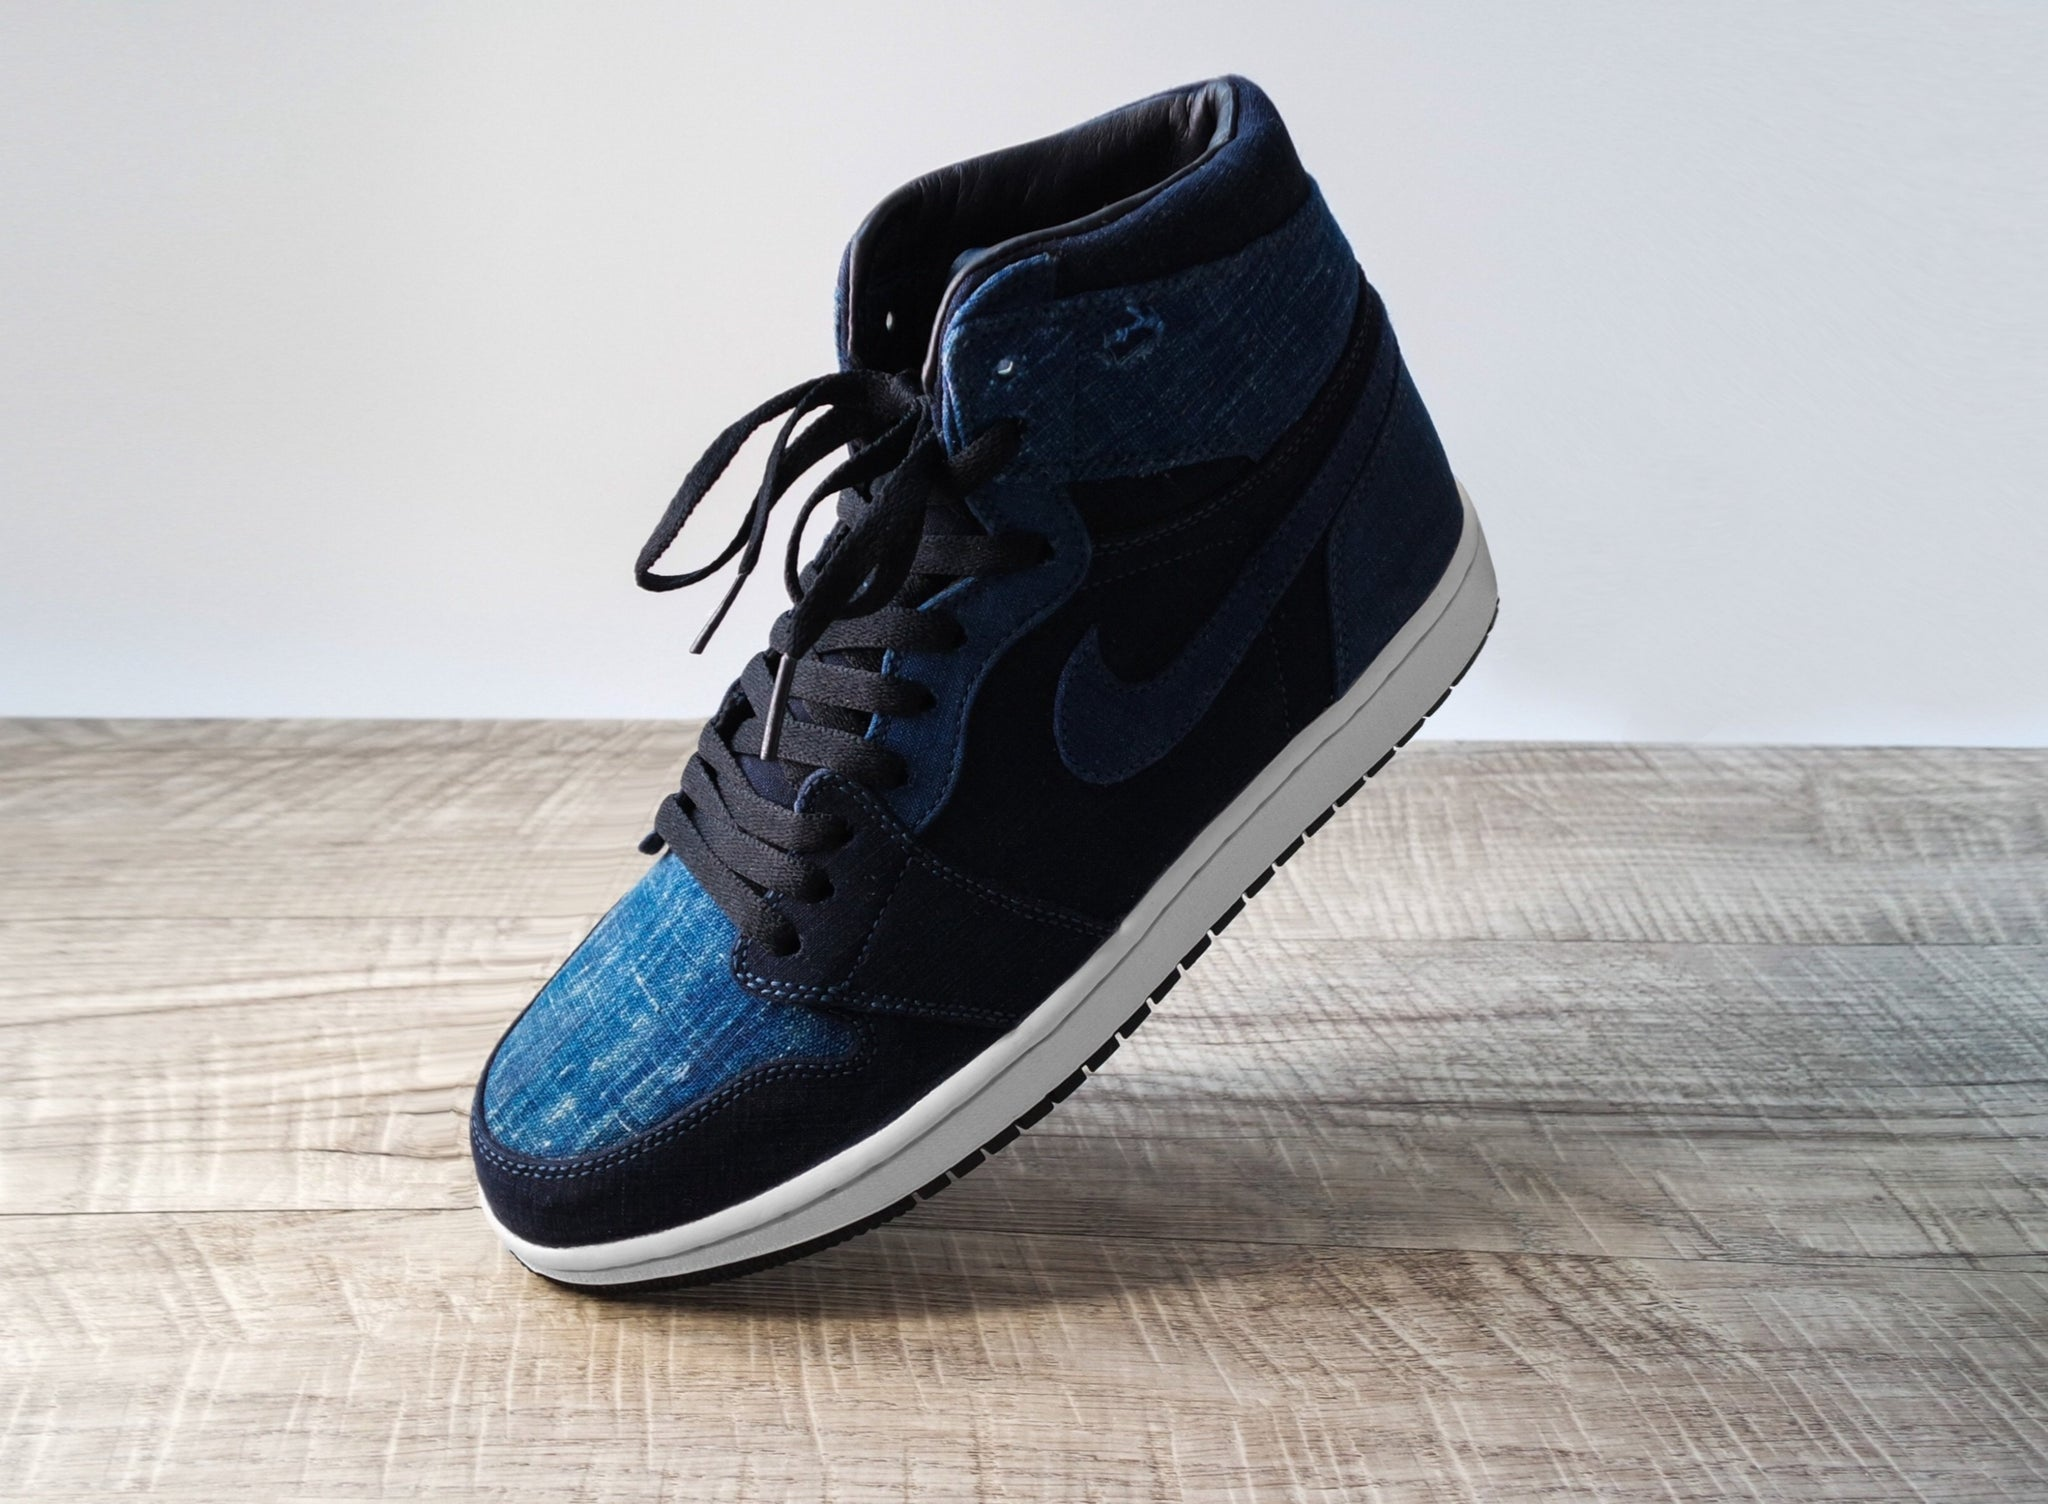 cheap for discount c0161 8b15a Load image into Gallery viewer, Nike Air Jordan 1 Retro HI OG - Japanese  Vintage ...